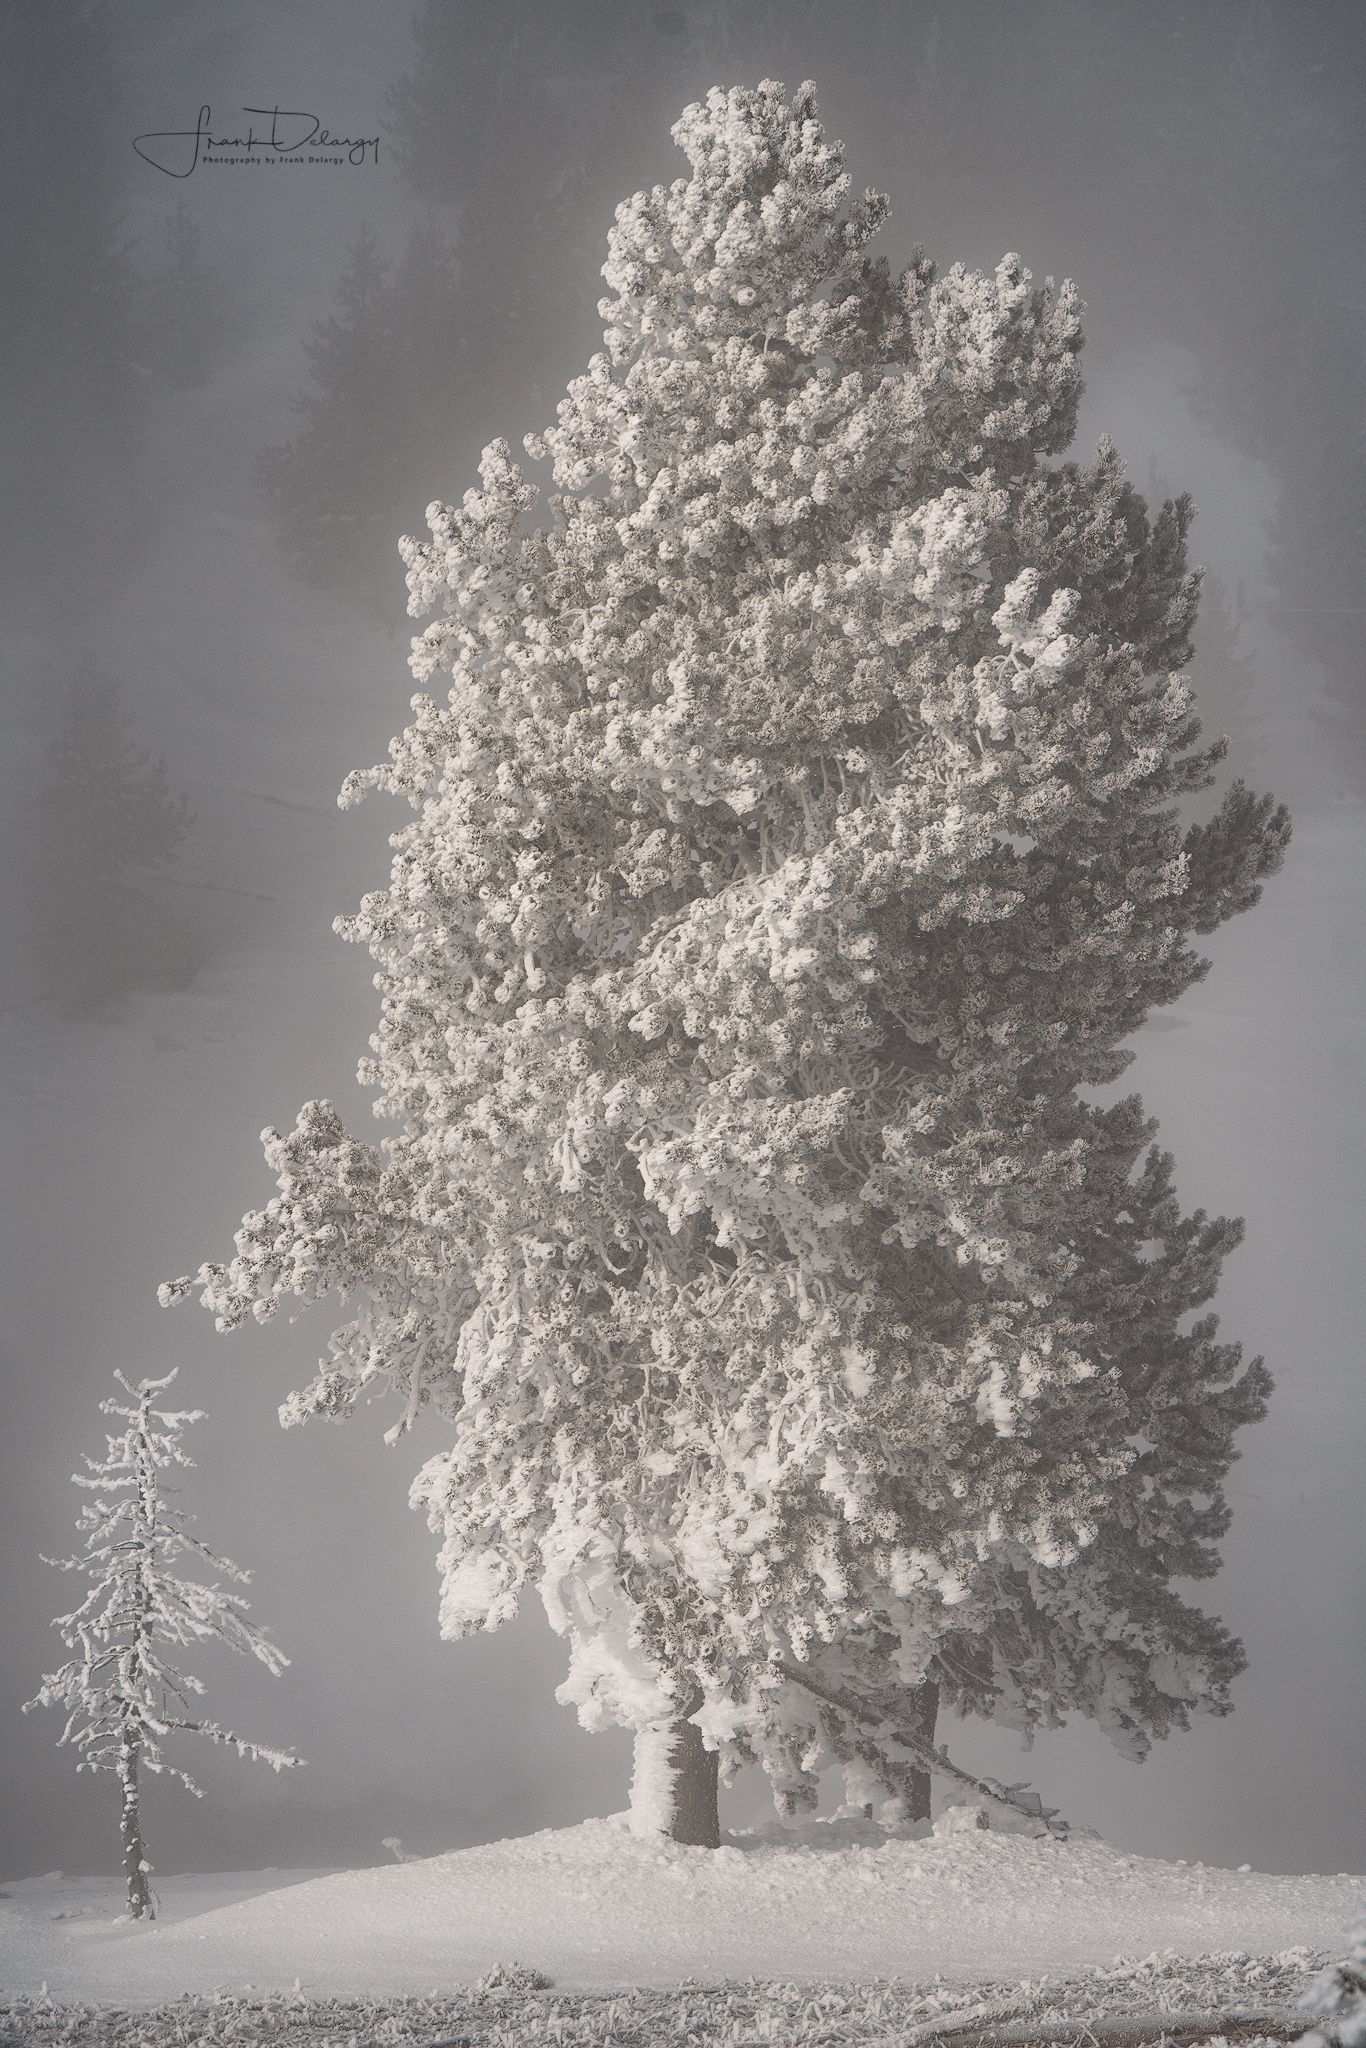 Ghost trees.. steam from the hot springs freezes on the branches forming ghostly shapes.